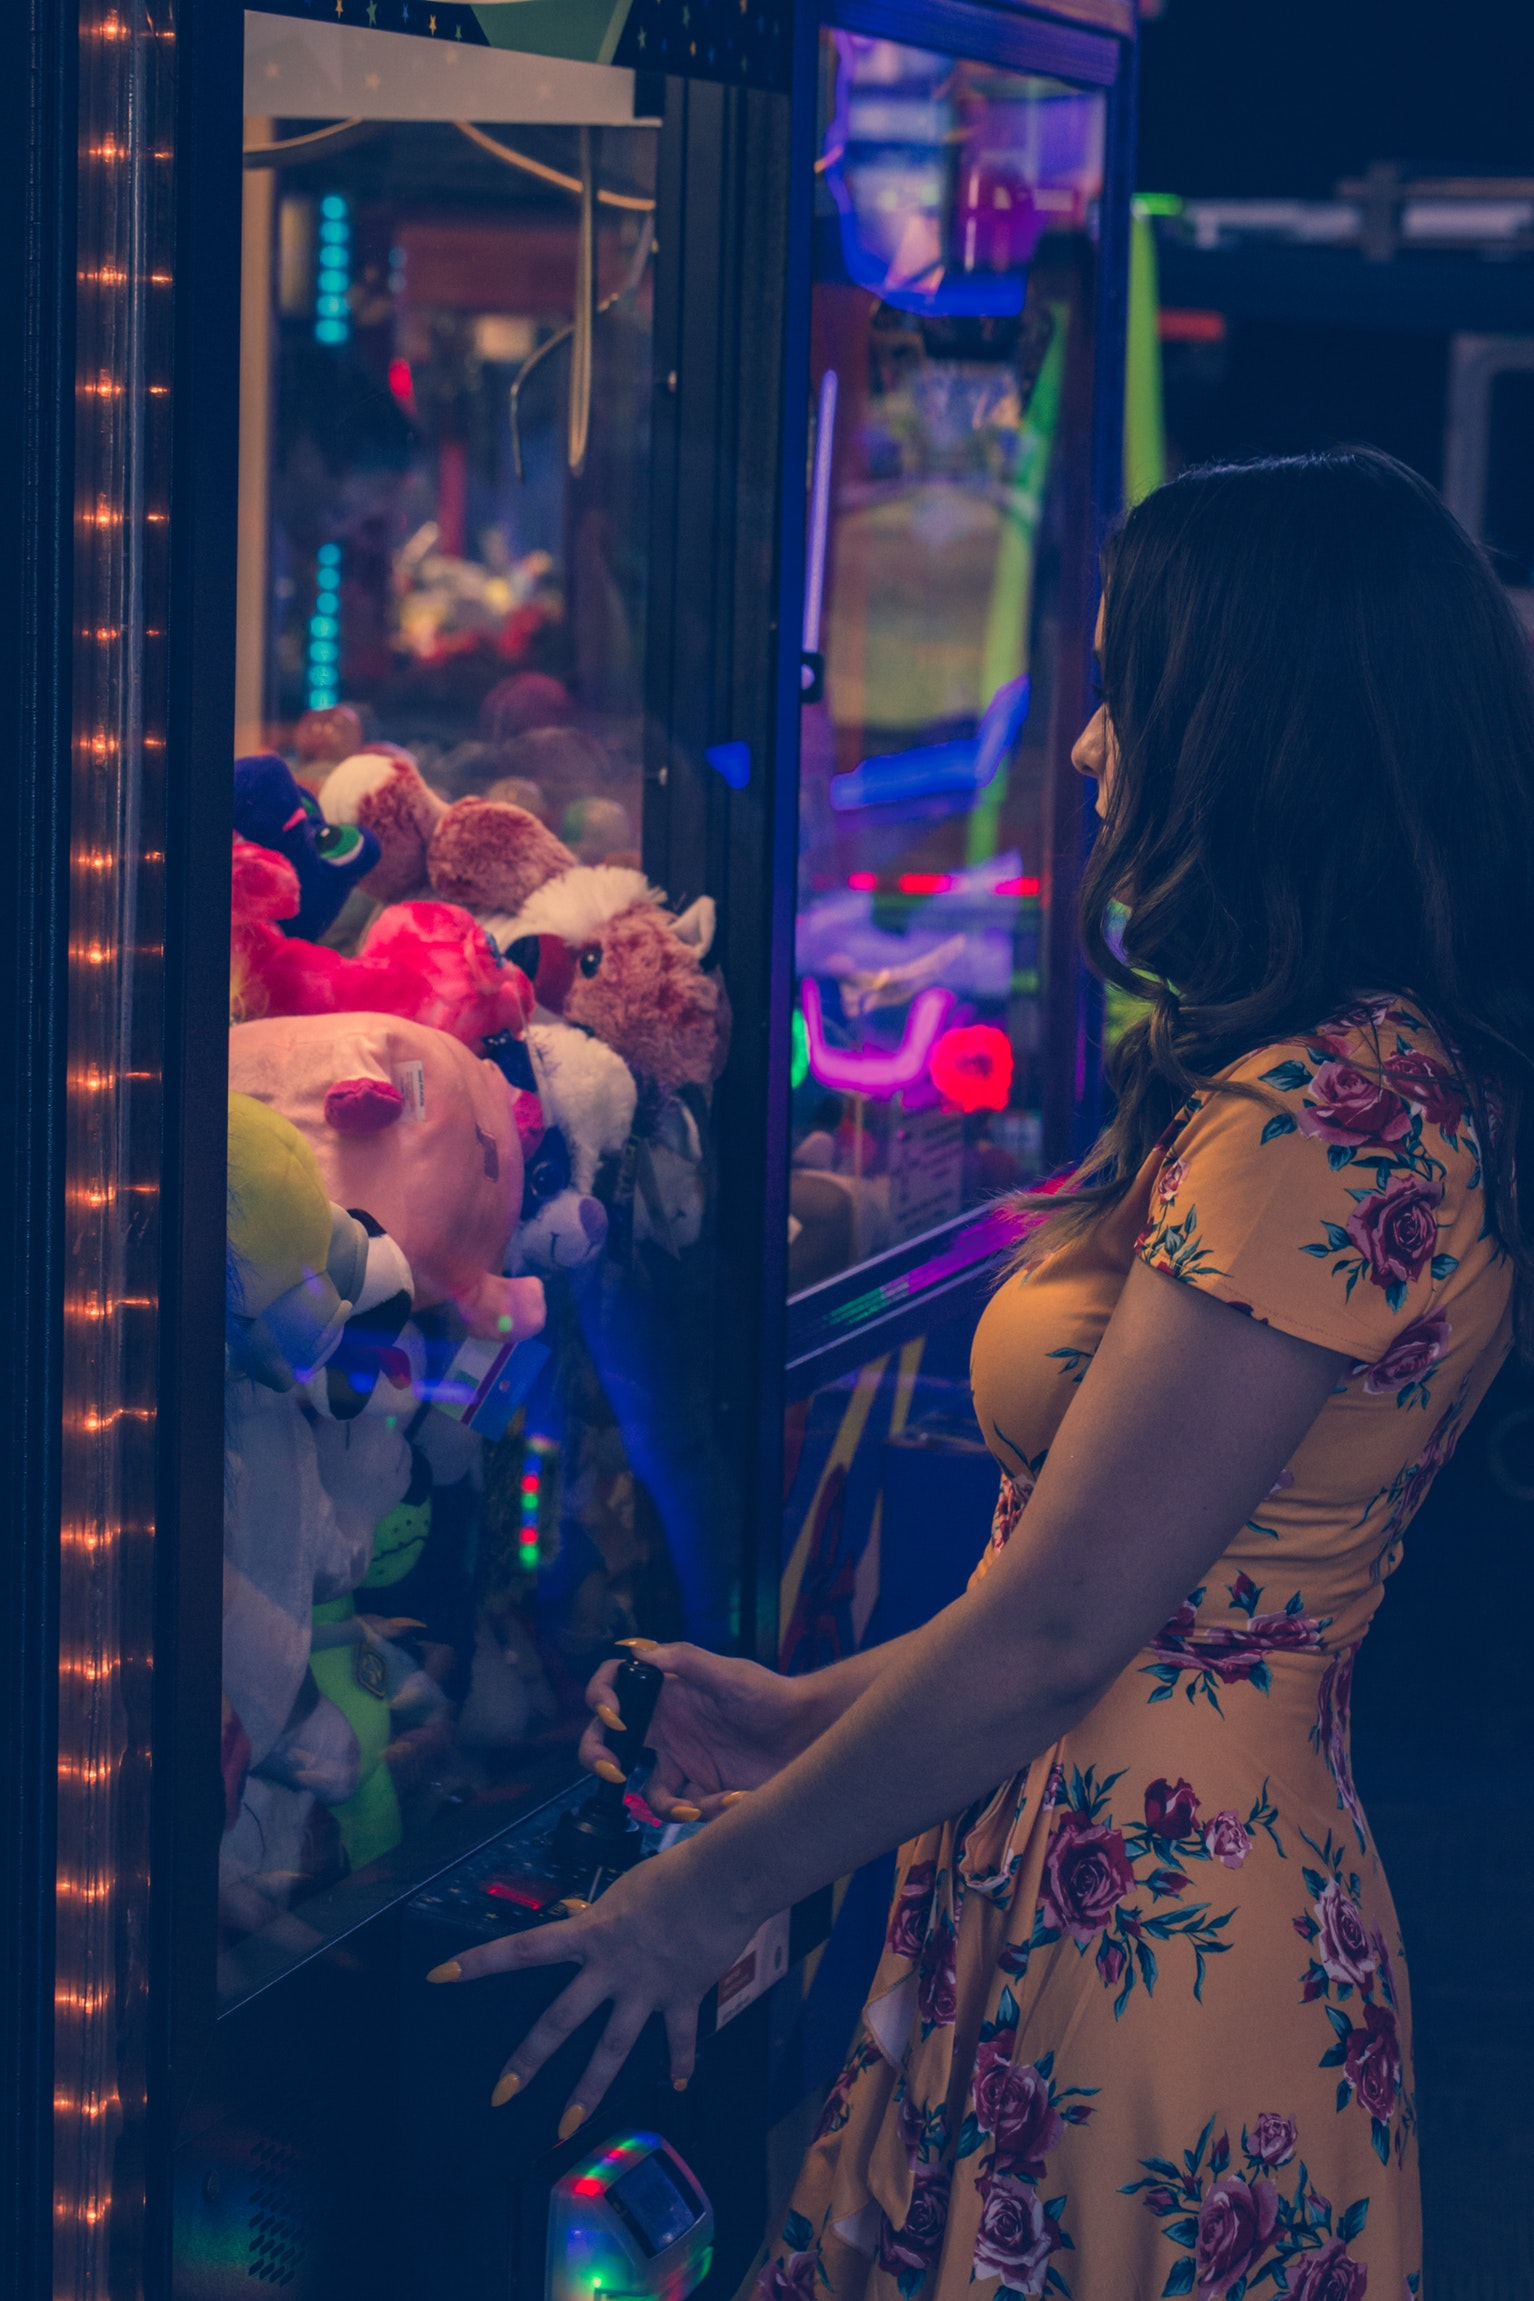 woman playing at the toy crane